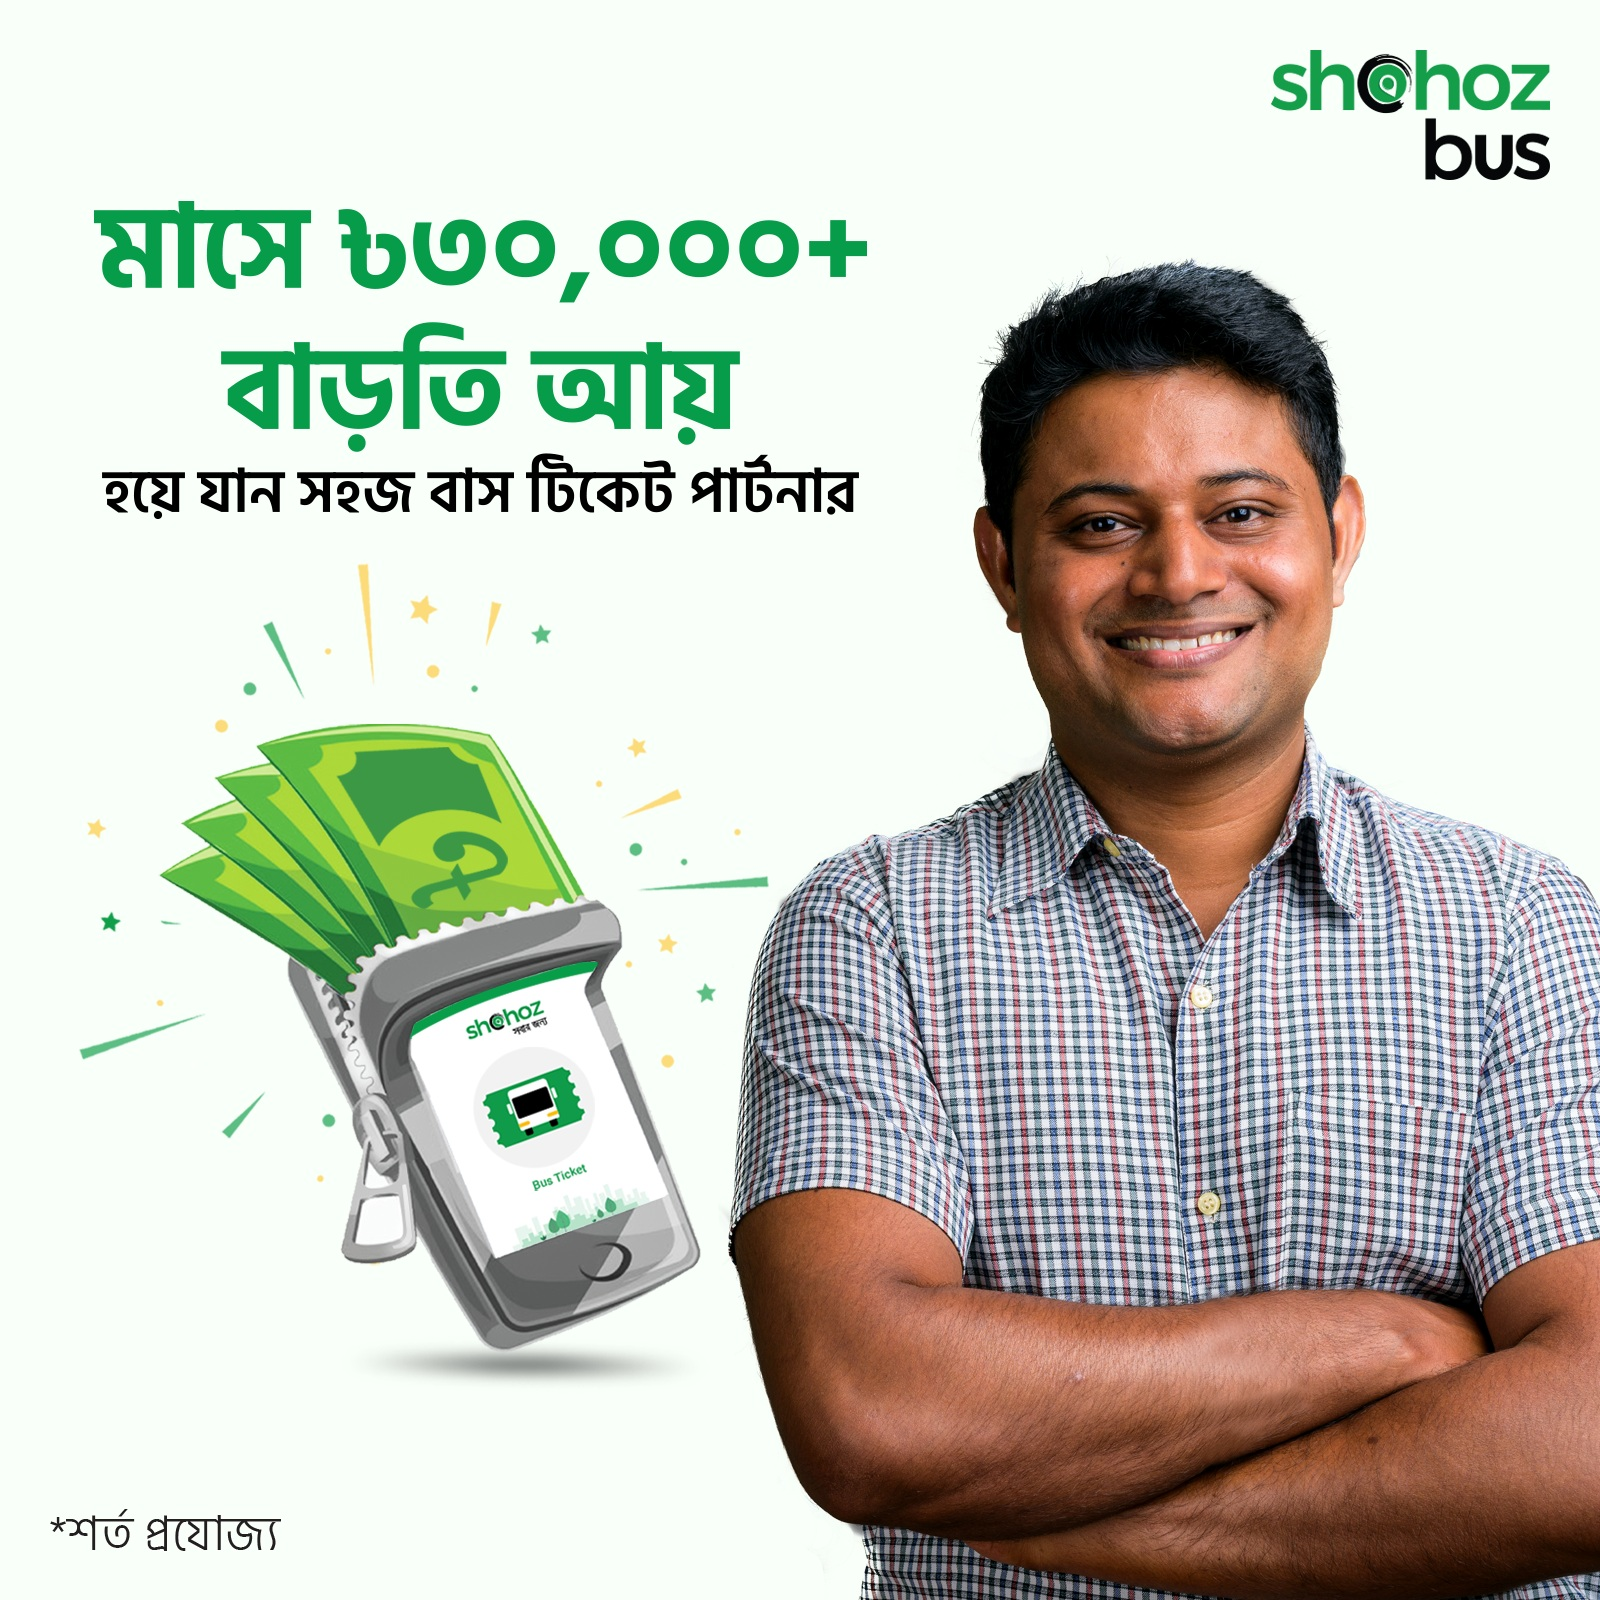 Shohoz Bus Ticket Partner